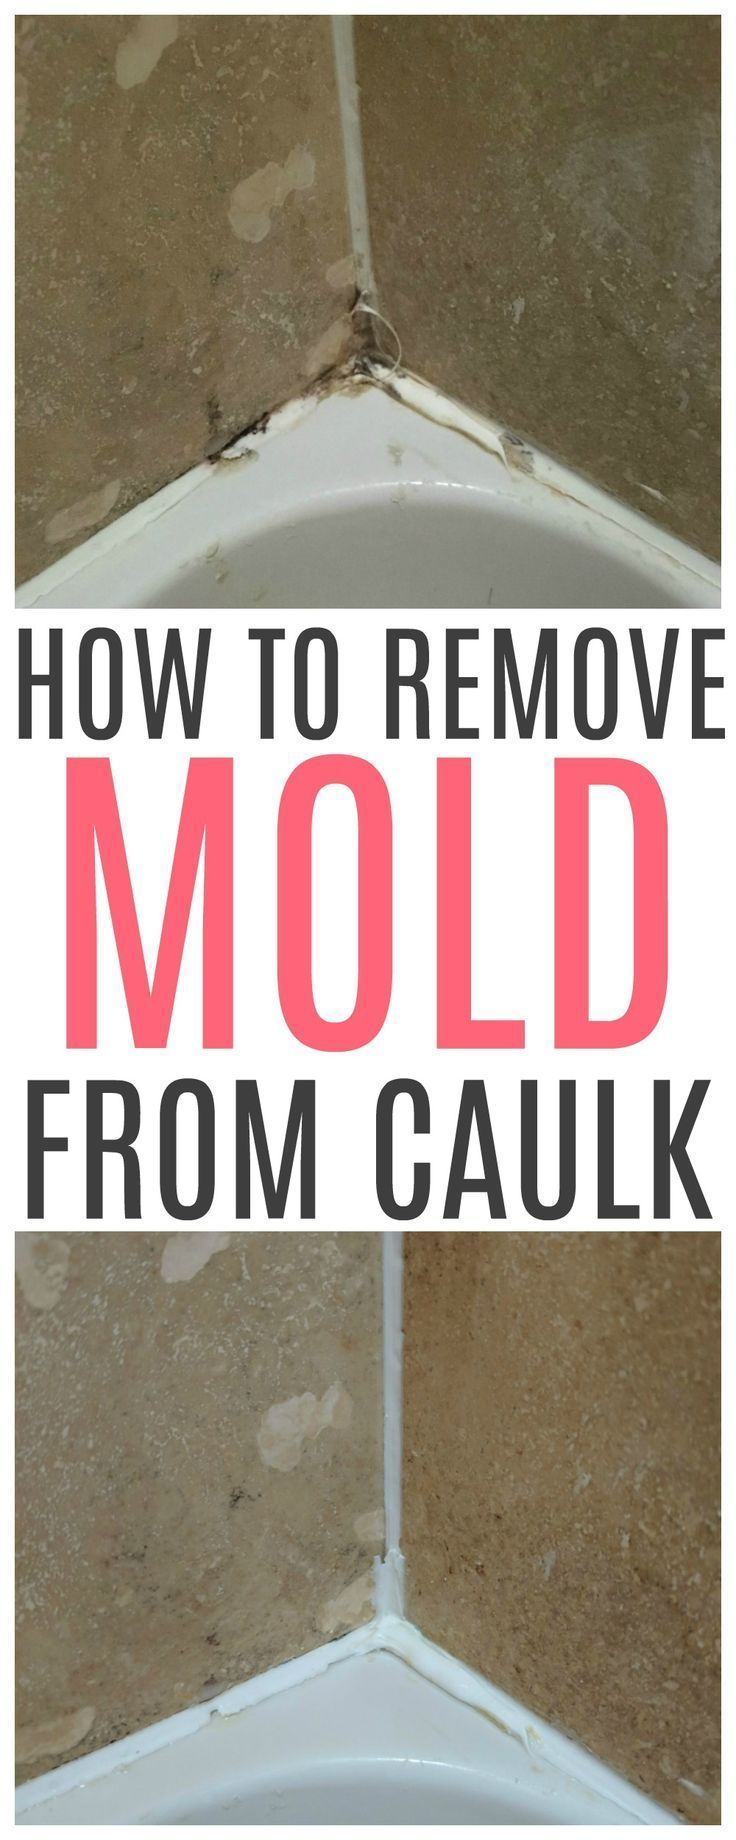 How To Remove Mold From Caulk Mold Remover Deep Cleaning Tips